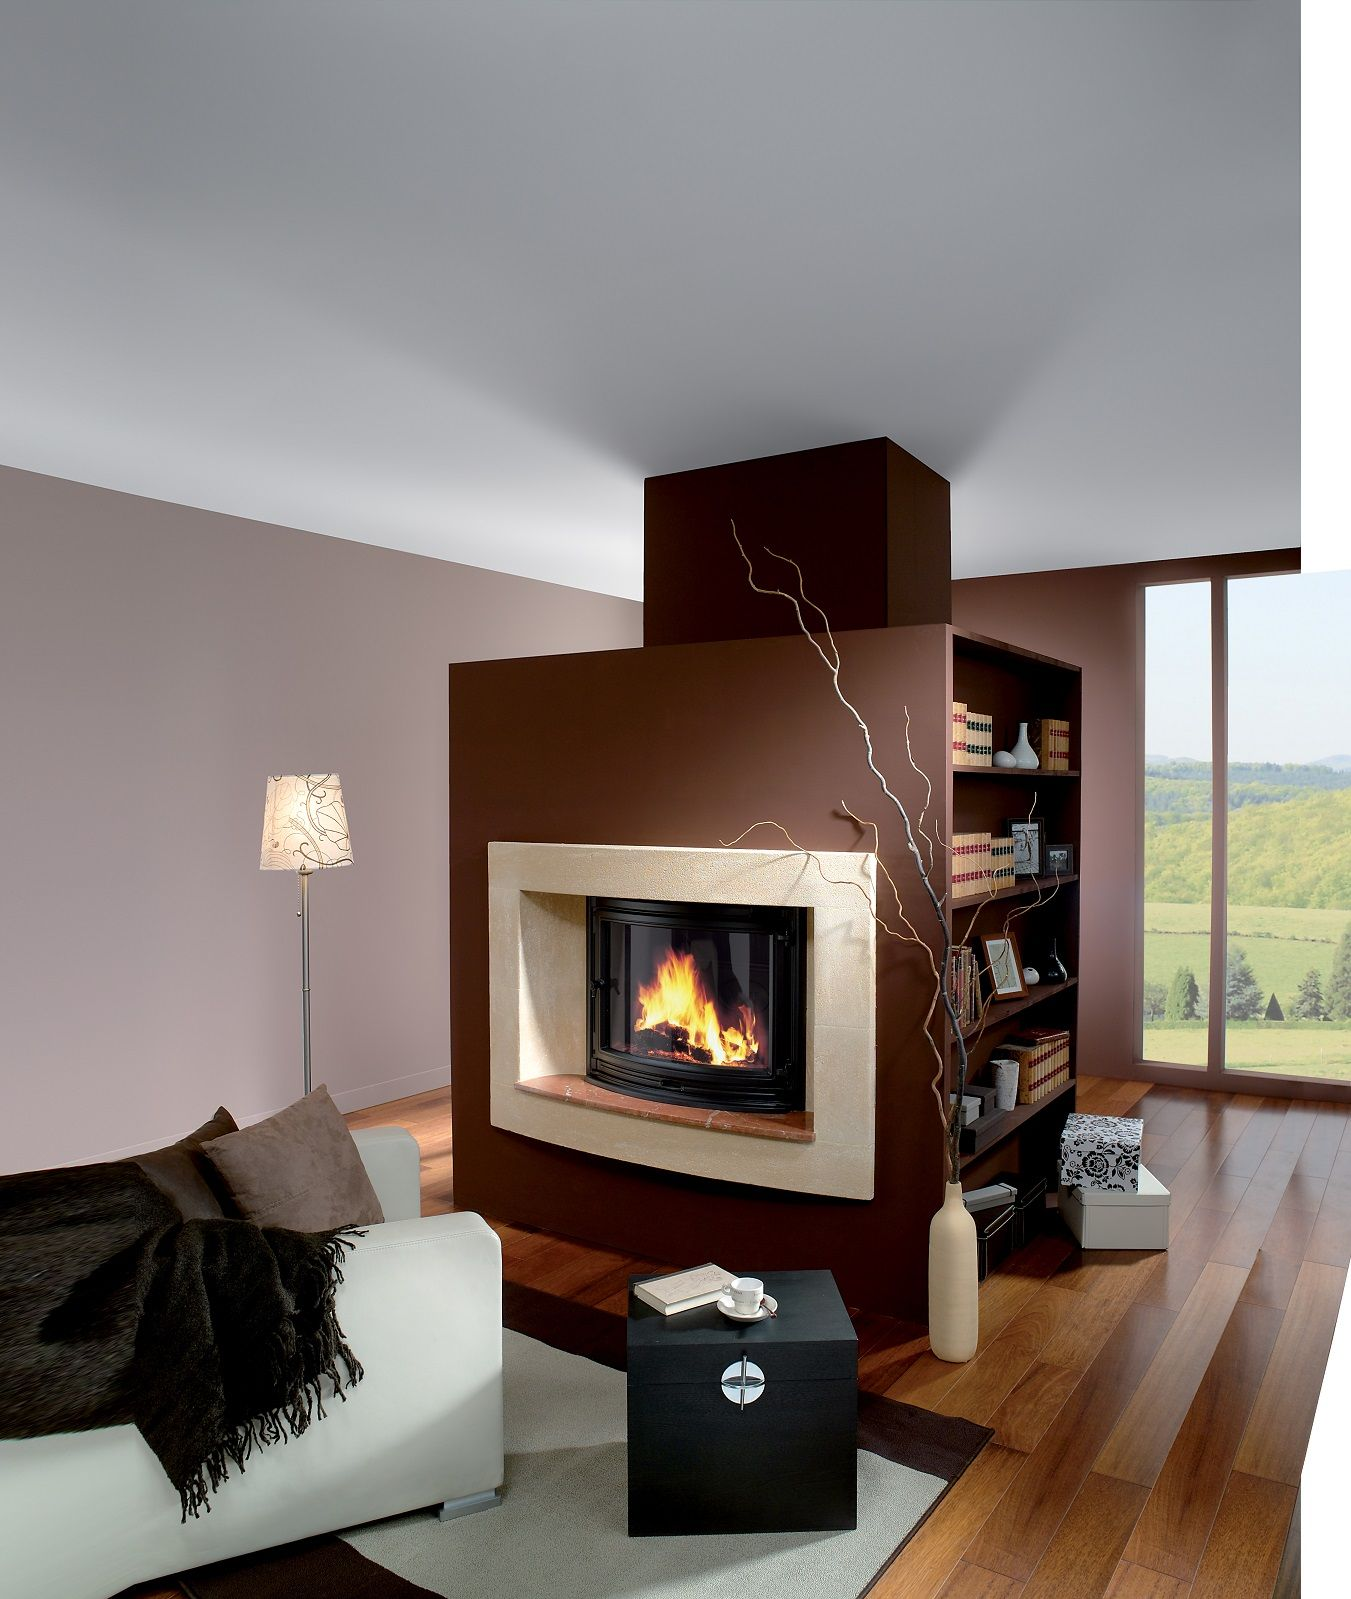 18 Fireplace Insert The Jotul I 18 Panorama Is A Large Insert Wood Burning Stove In A